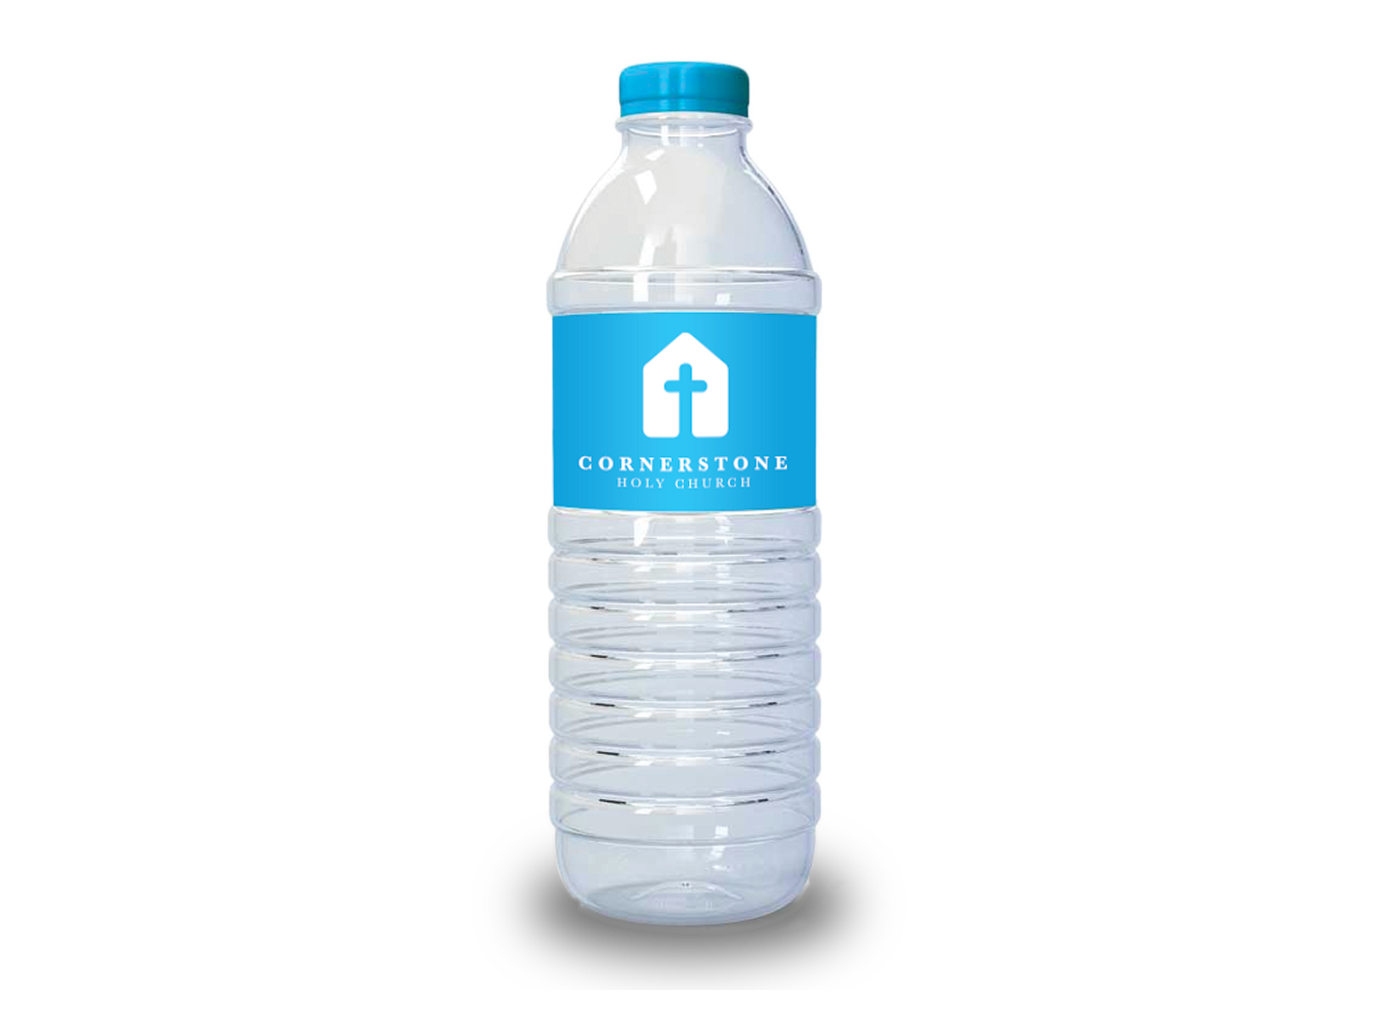 https://www.stiglerprinting.com/images/products_gallery_images/Church_Web_Images_Water_Bottle_Stickers90.png